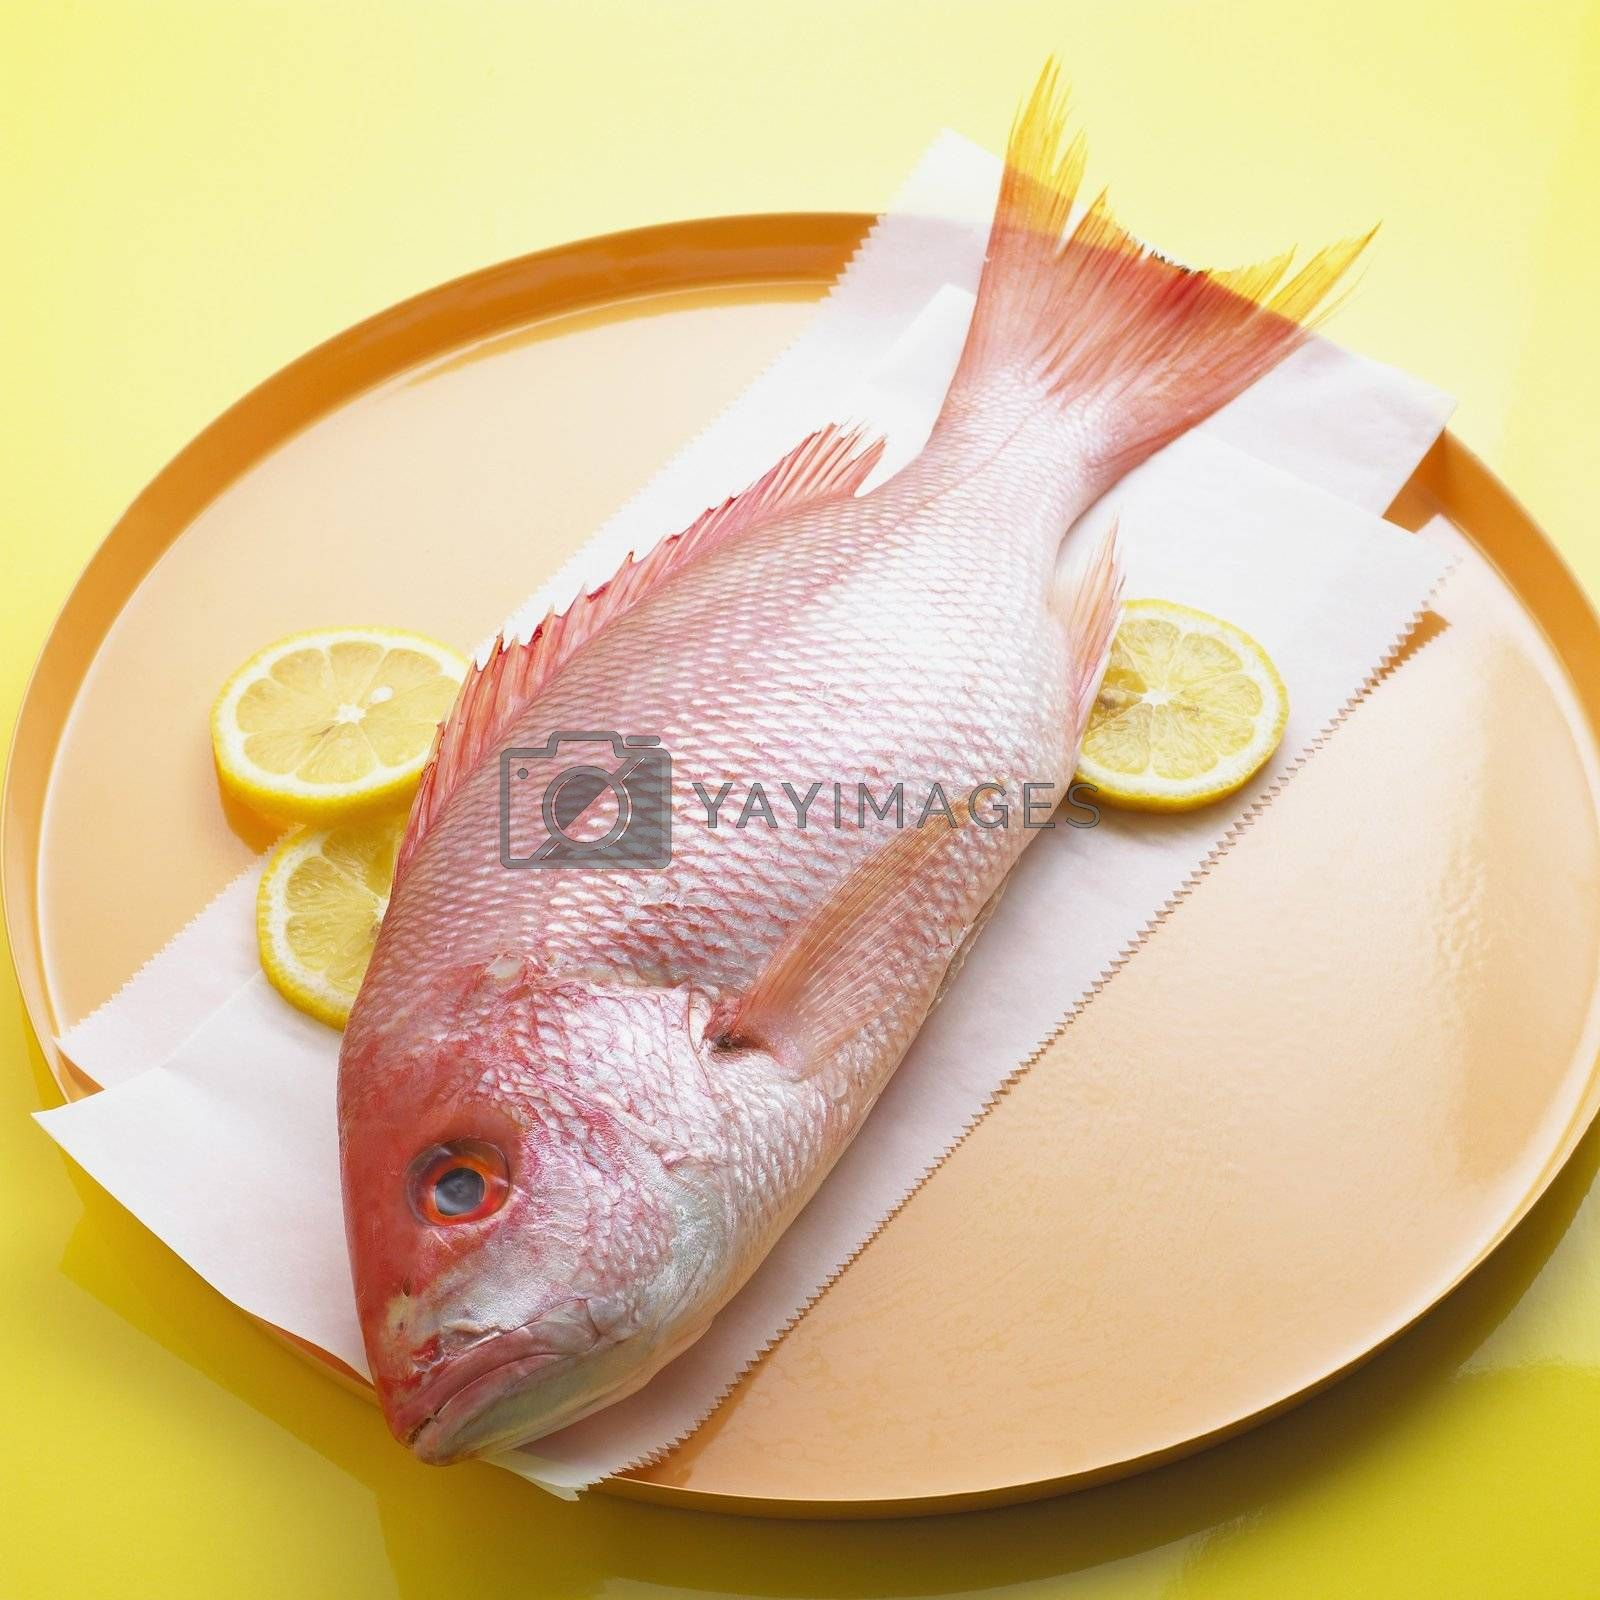 Whole Red Snapper